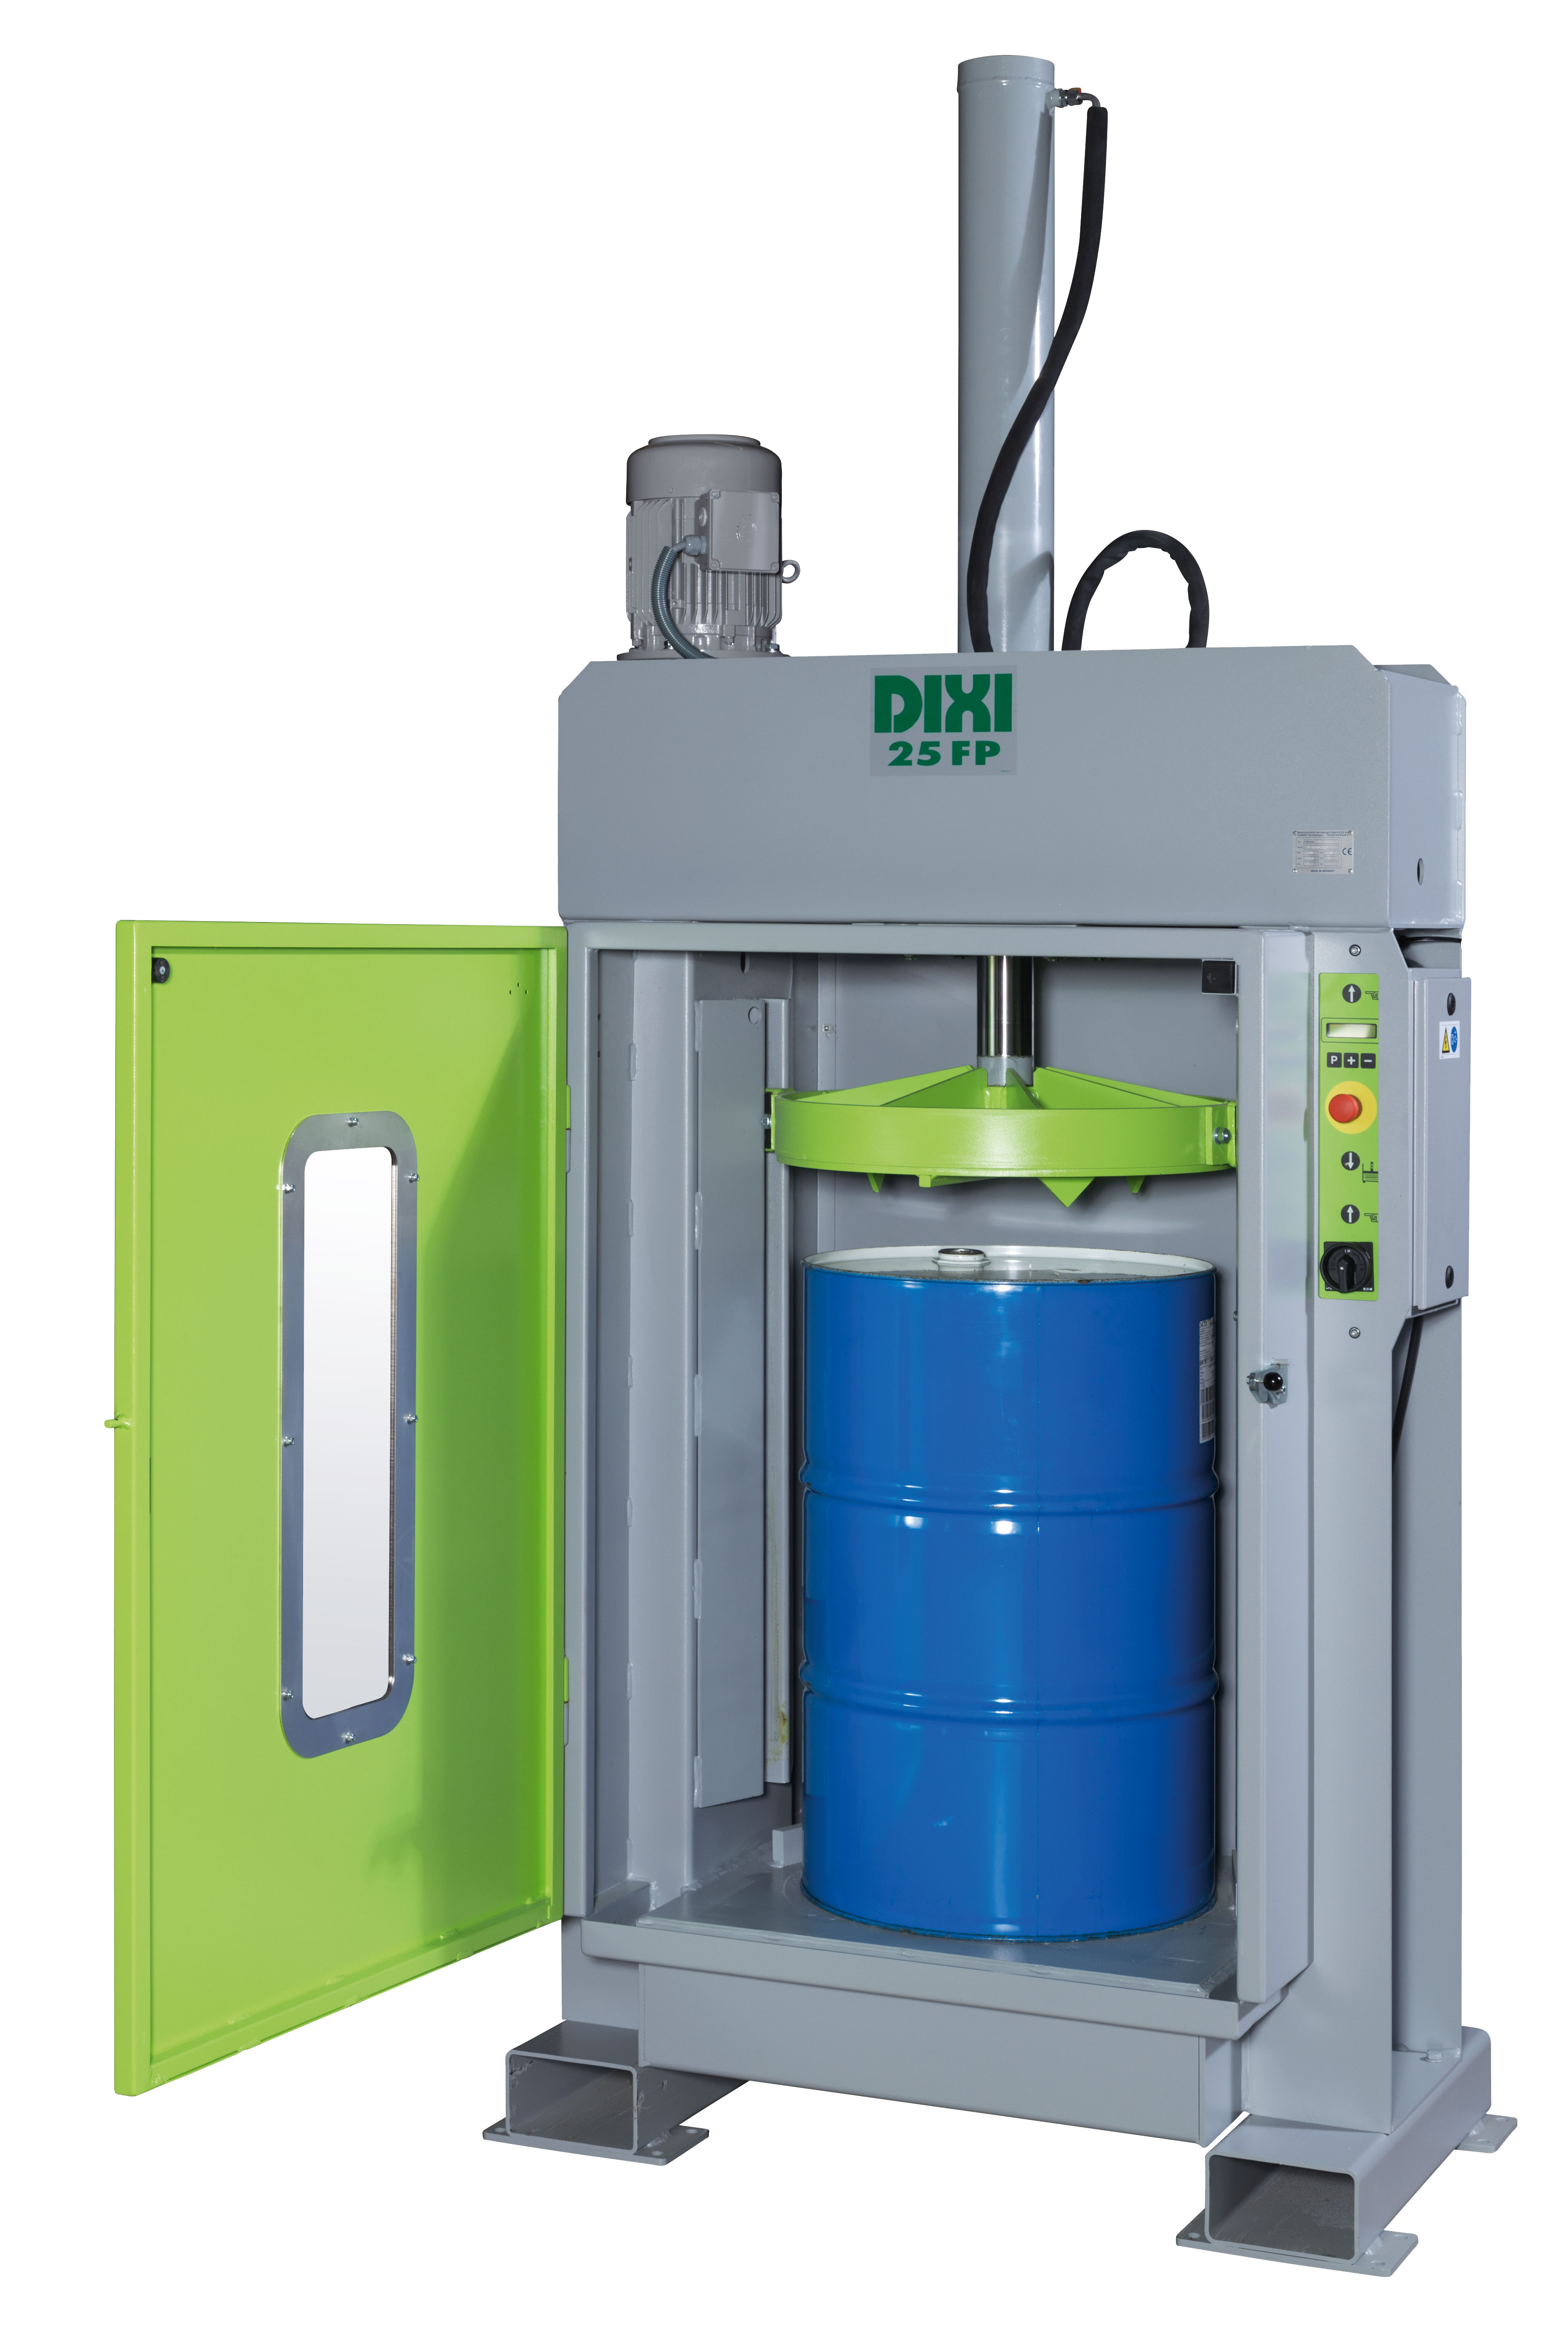 dixi 25 fp drum press